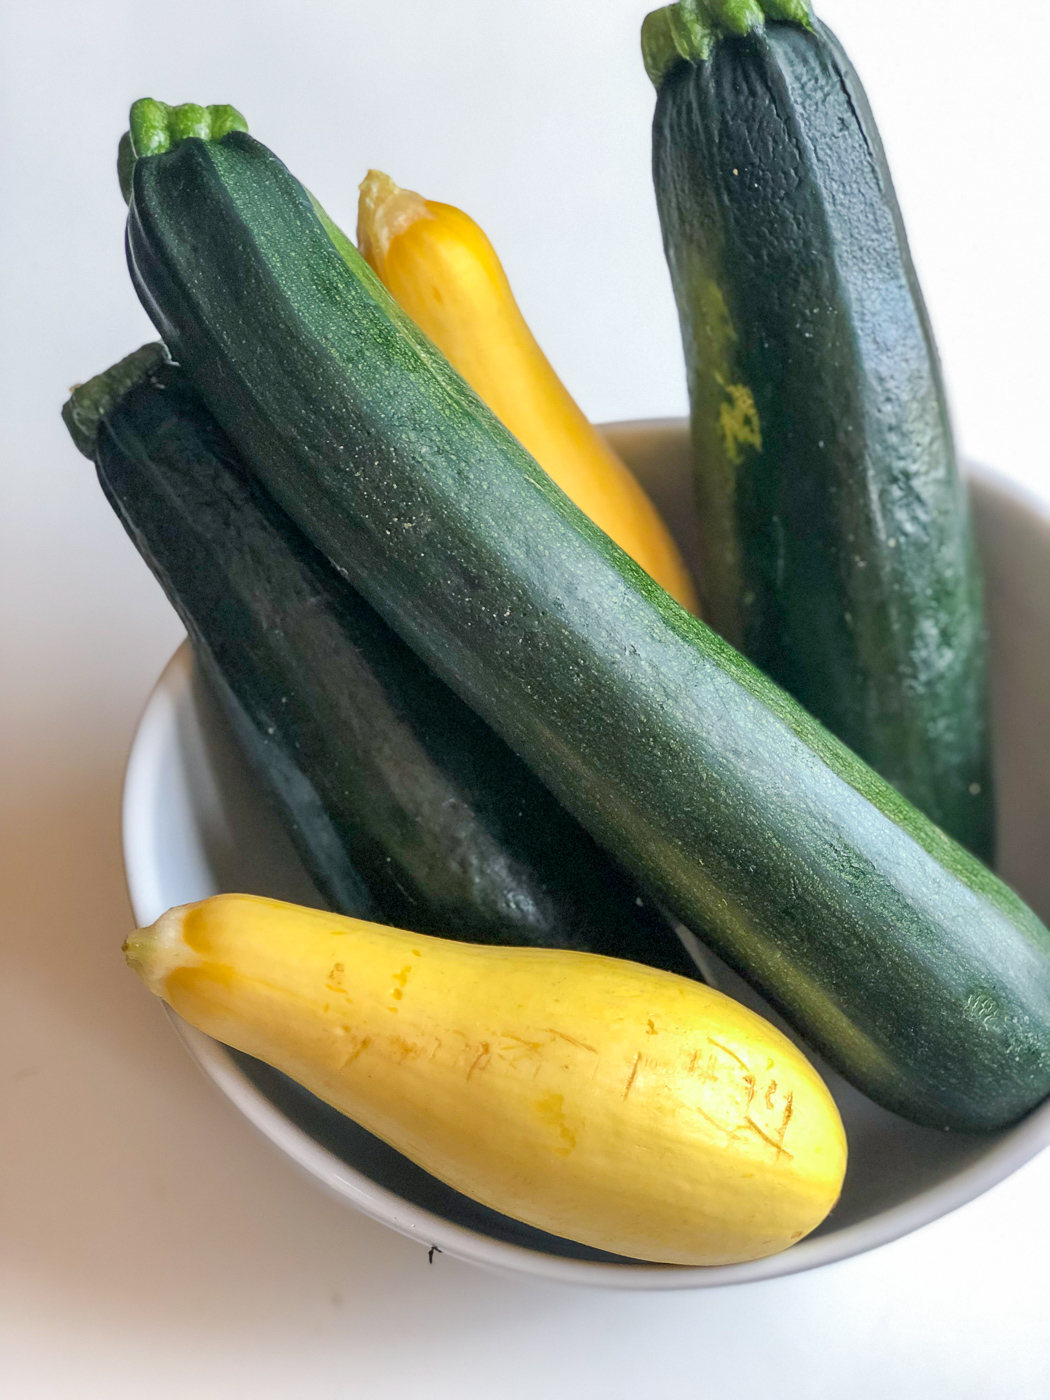 Meet Your Ingredients: Zucchini